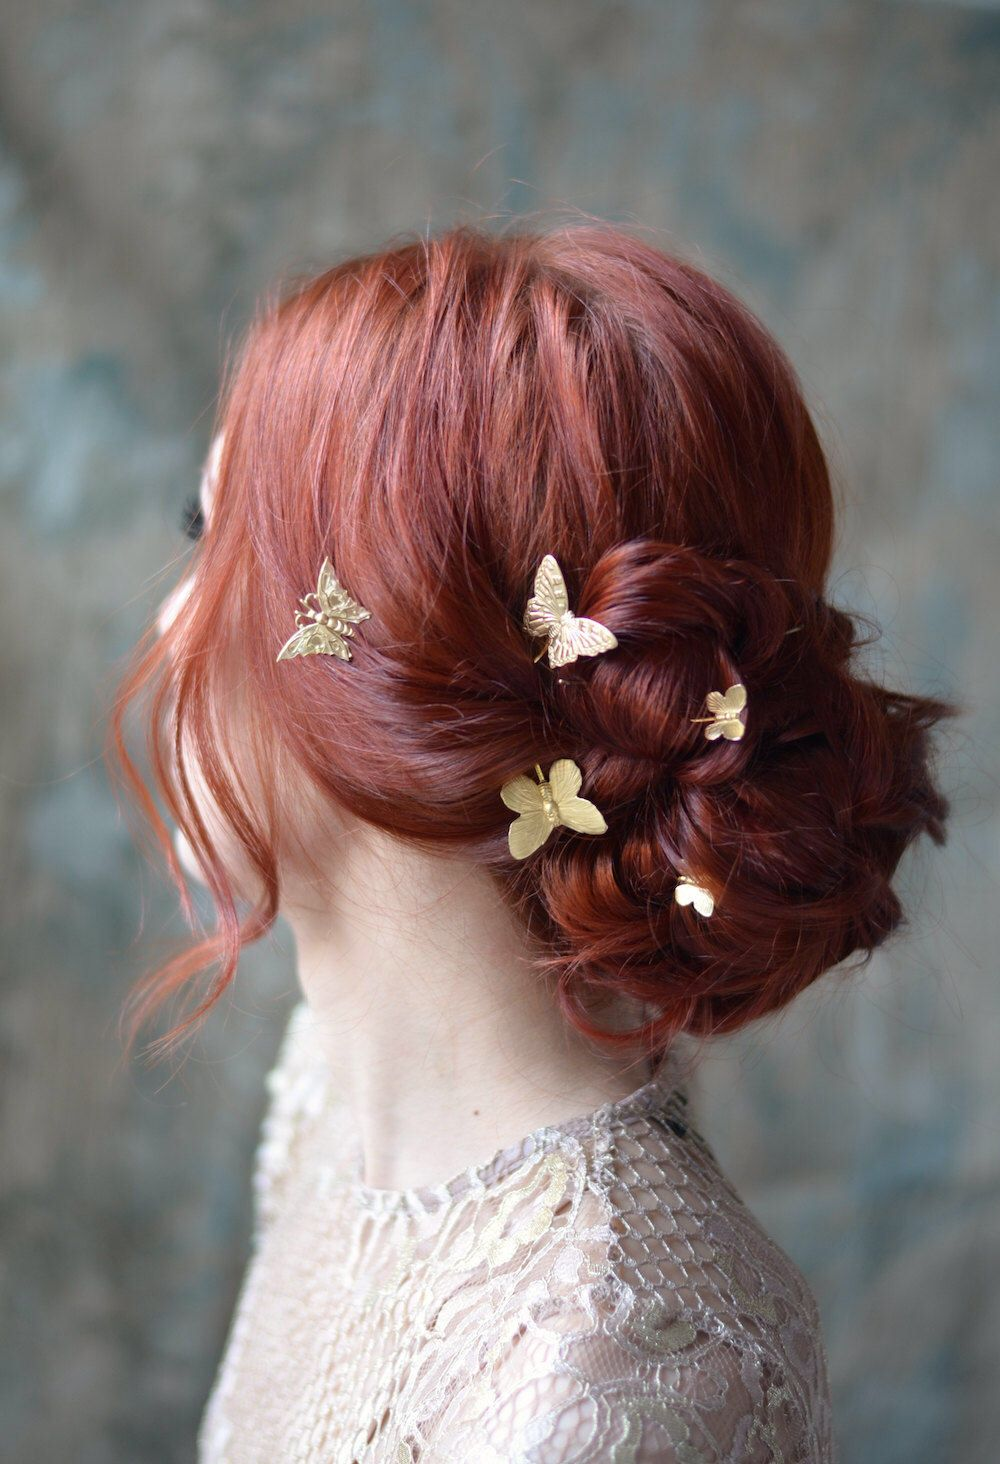 pin by amy carden on wedding | pinterest | bobby, bridal hair and